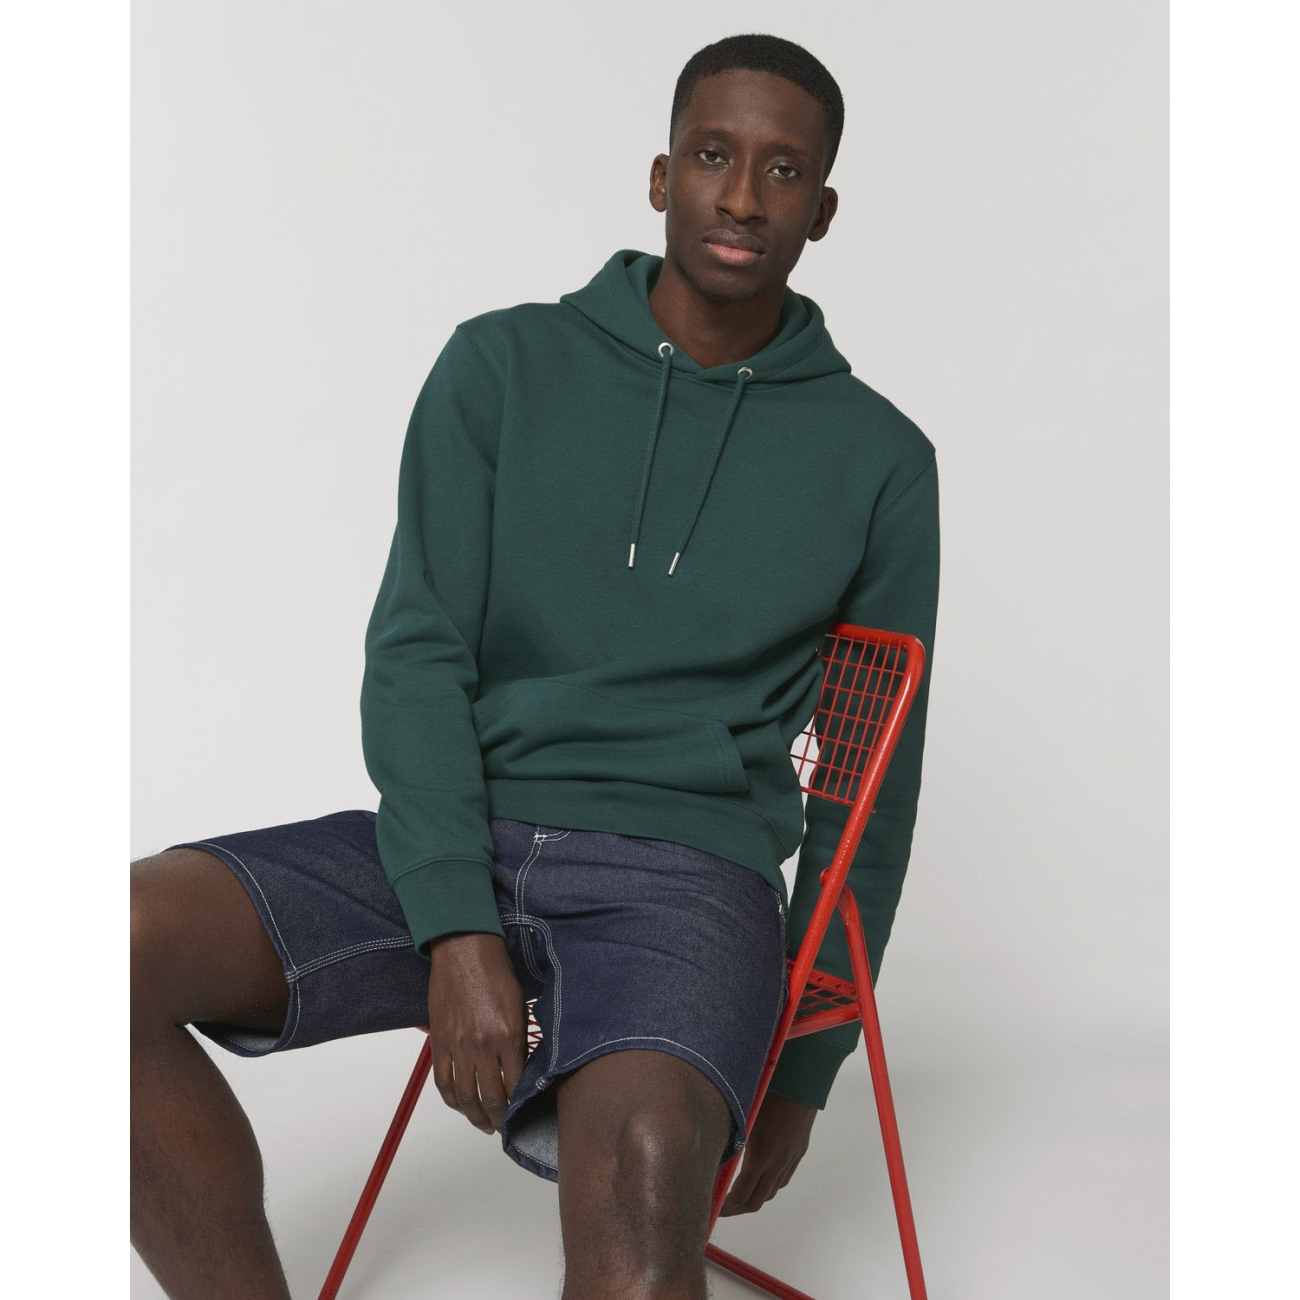 https://tee-shirt-bio.com/9127-thickbox_default/sweat-shirt-capuche-epais-et-interieur-doux-coton-bio-vert-bouteille.jpg